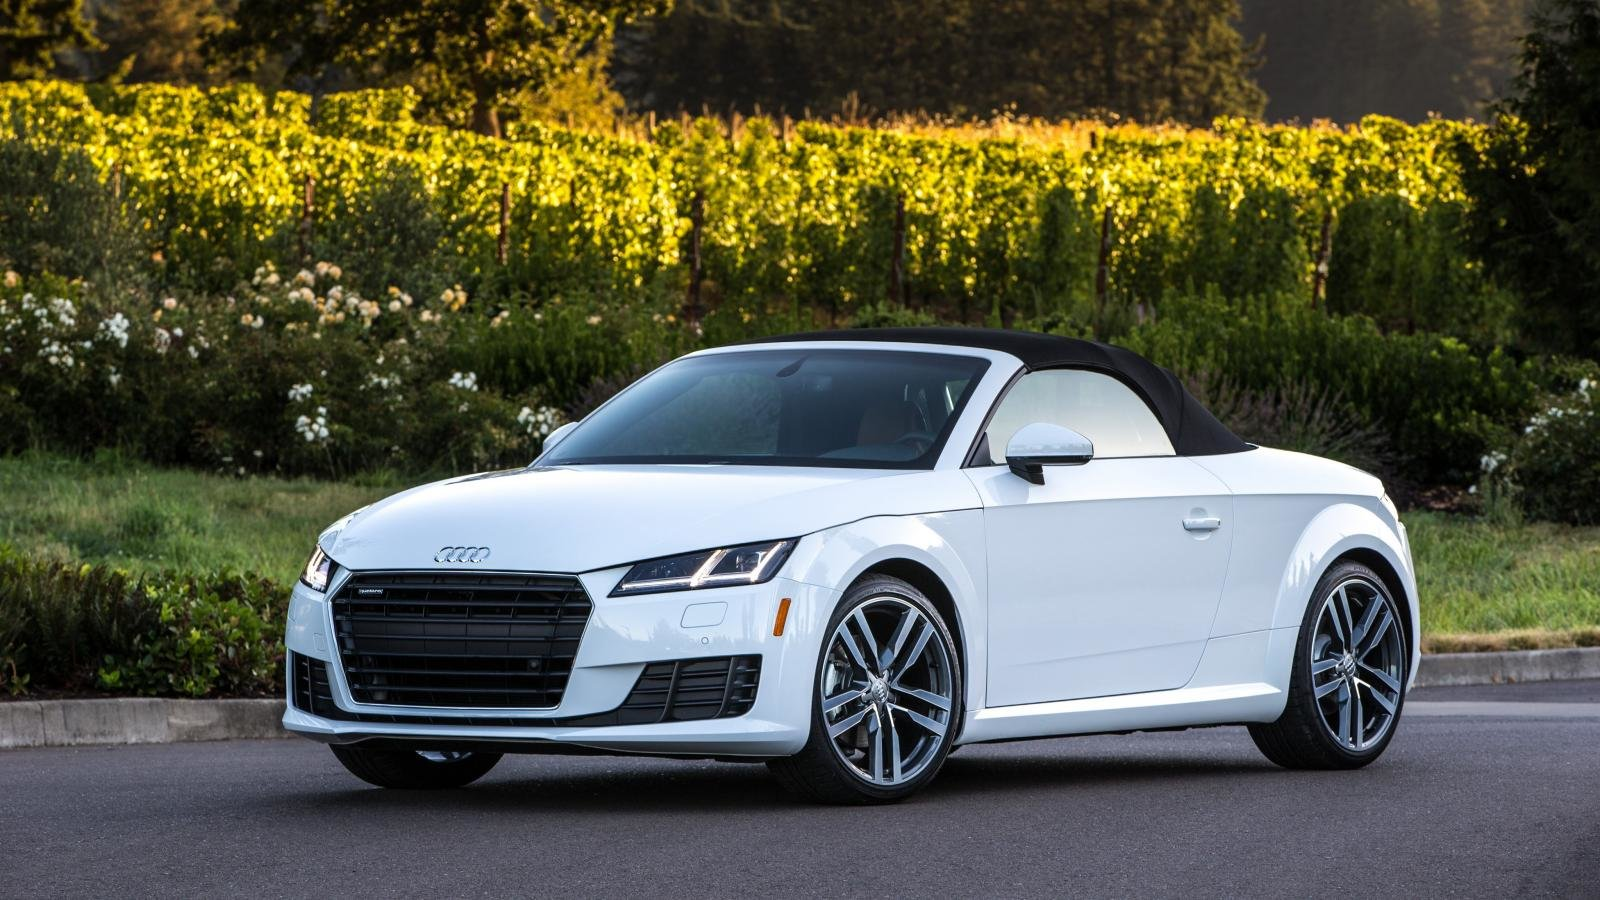 audi tt wallpapers 1600x900 desktop backgrounds